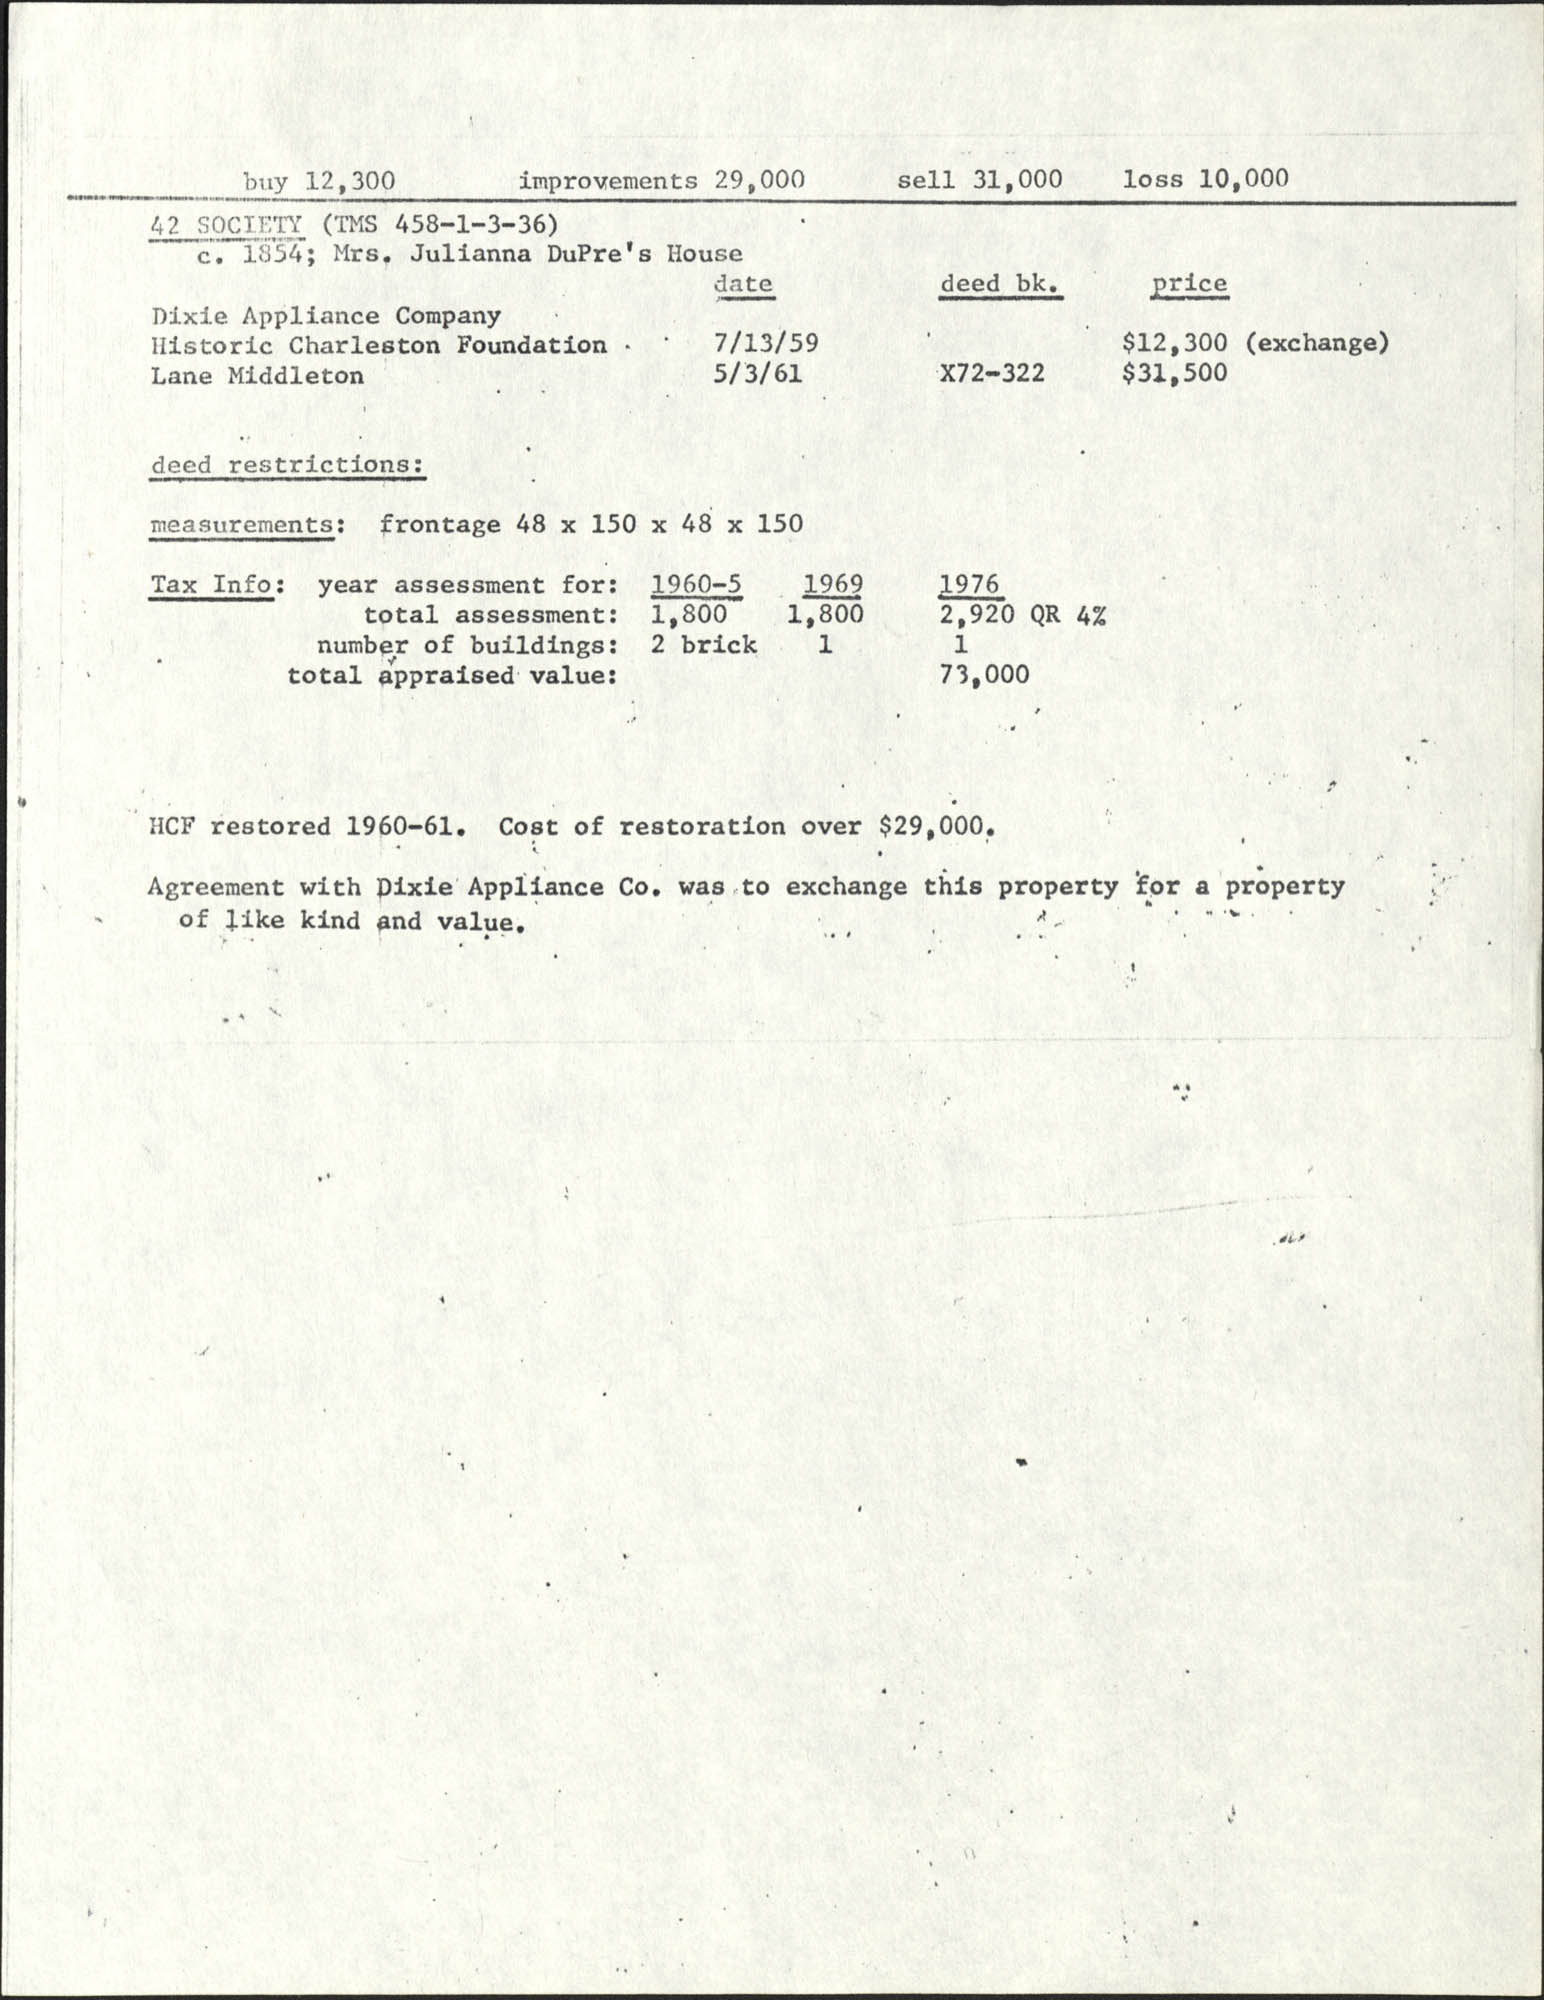 Deed records for 42 Society Street